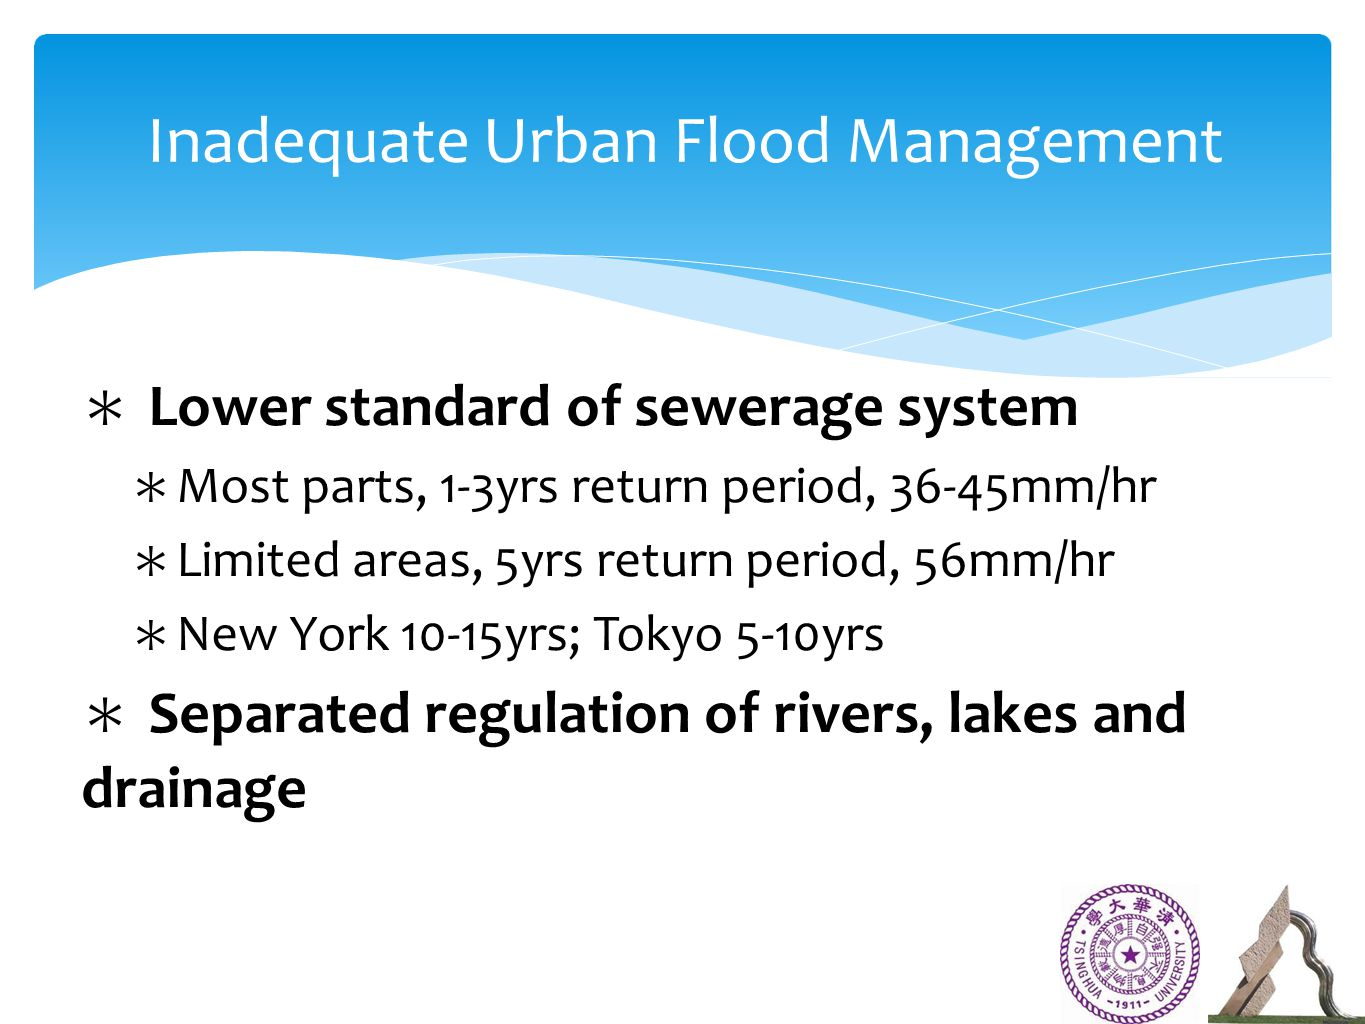 ∗ Lower standard of sewerage system ∗ Most parts, 1-3yrs return period, 36-45mm/hr ∗ Limited areas, 5yrs return period, 56mm/hr ∗ New York 10-15yrs; Tokyo 5-10yrs ∗ Separated regulation of rivers, lakes and drainage Inadequate Urban Flood Management